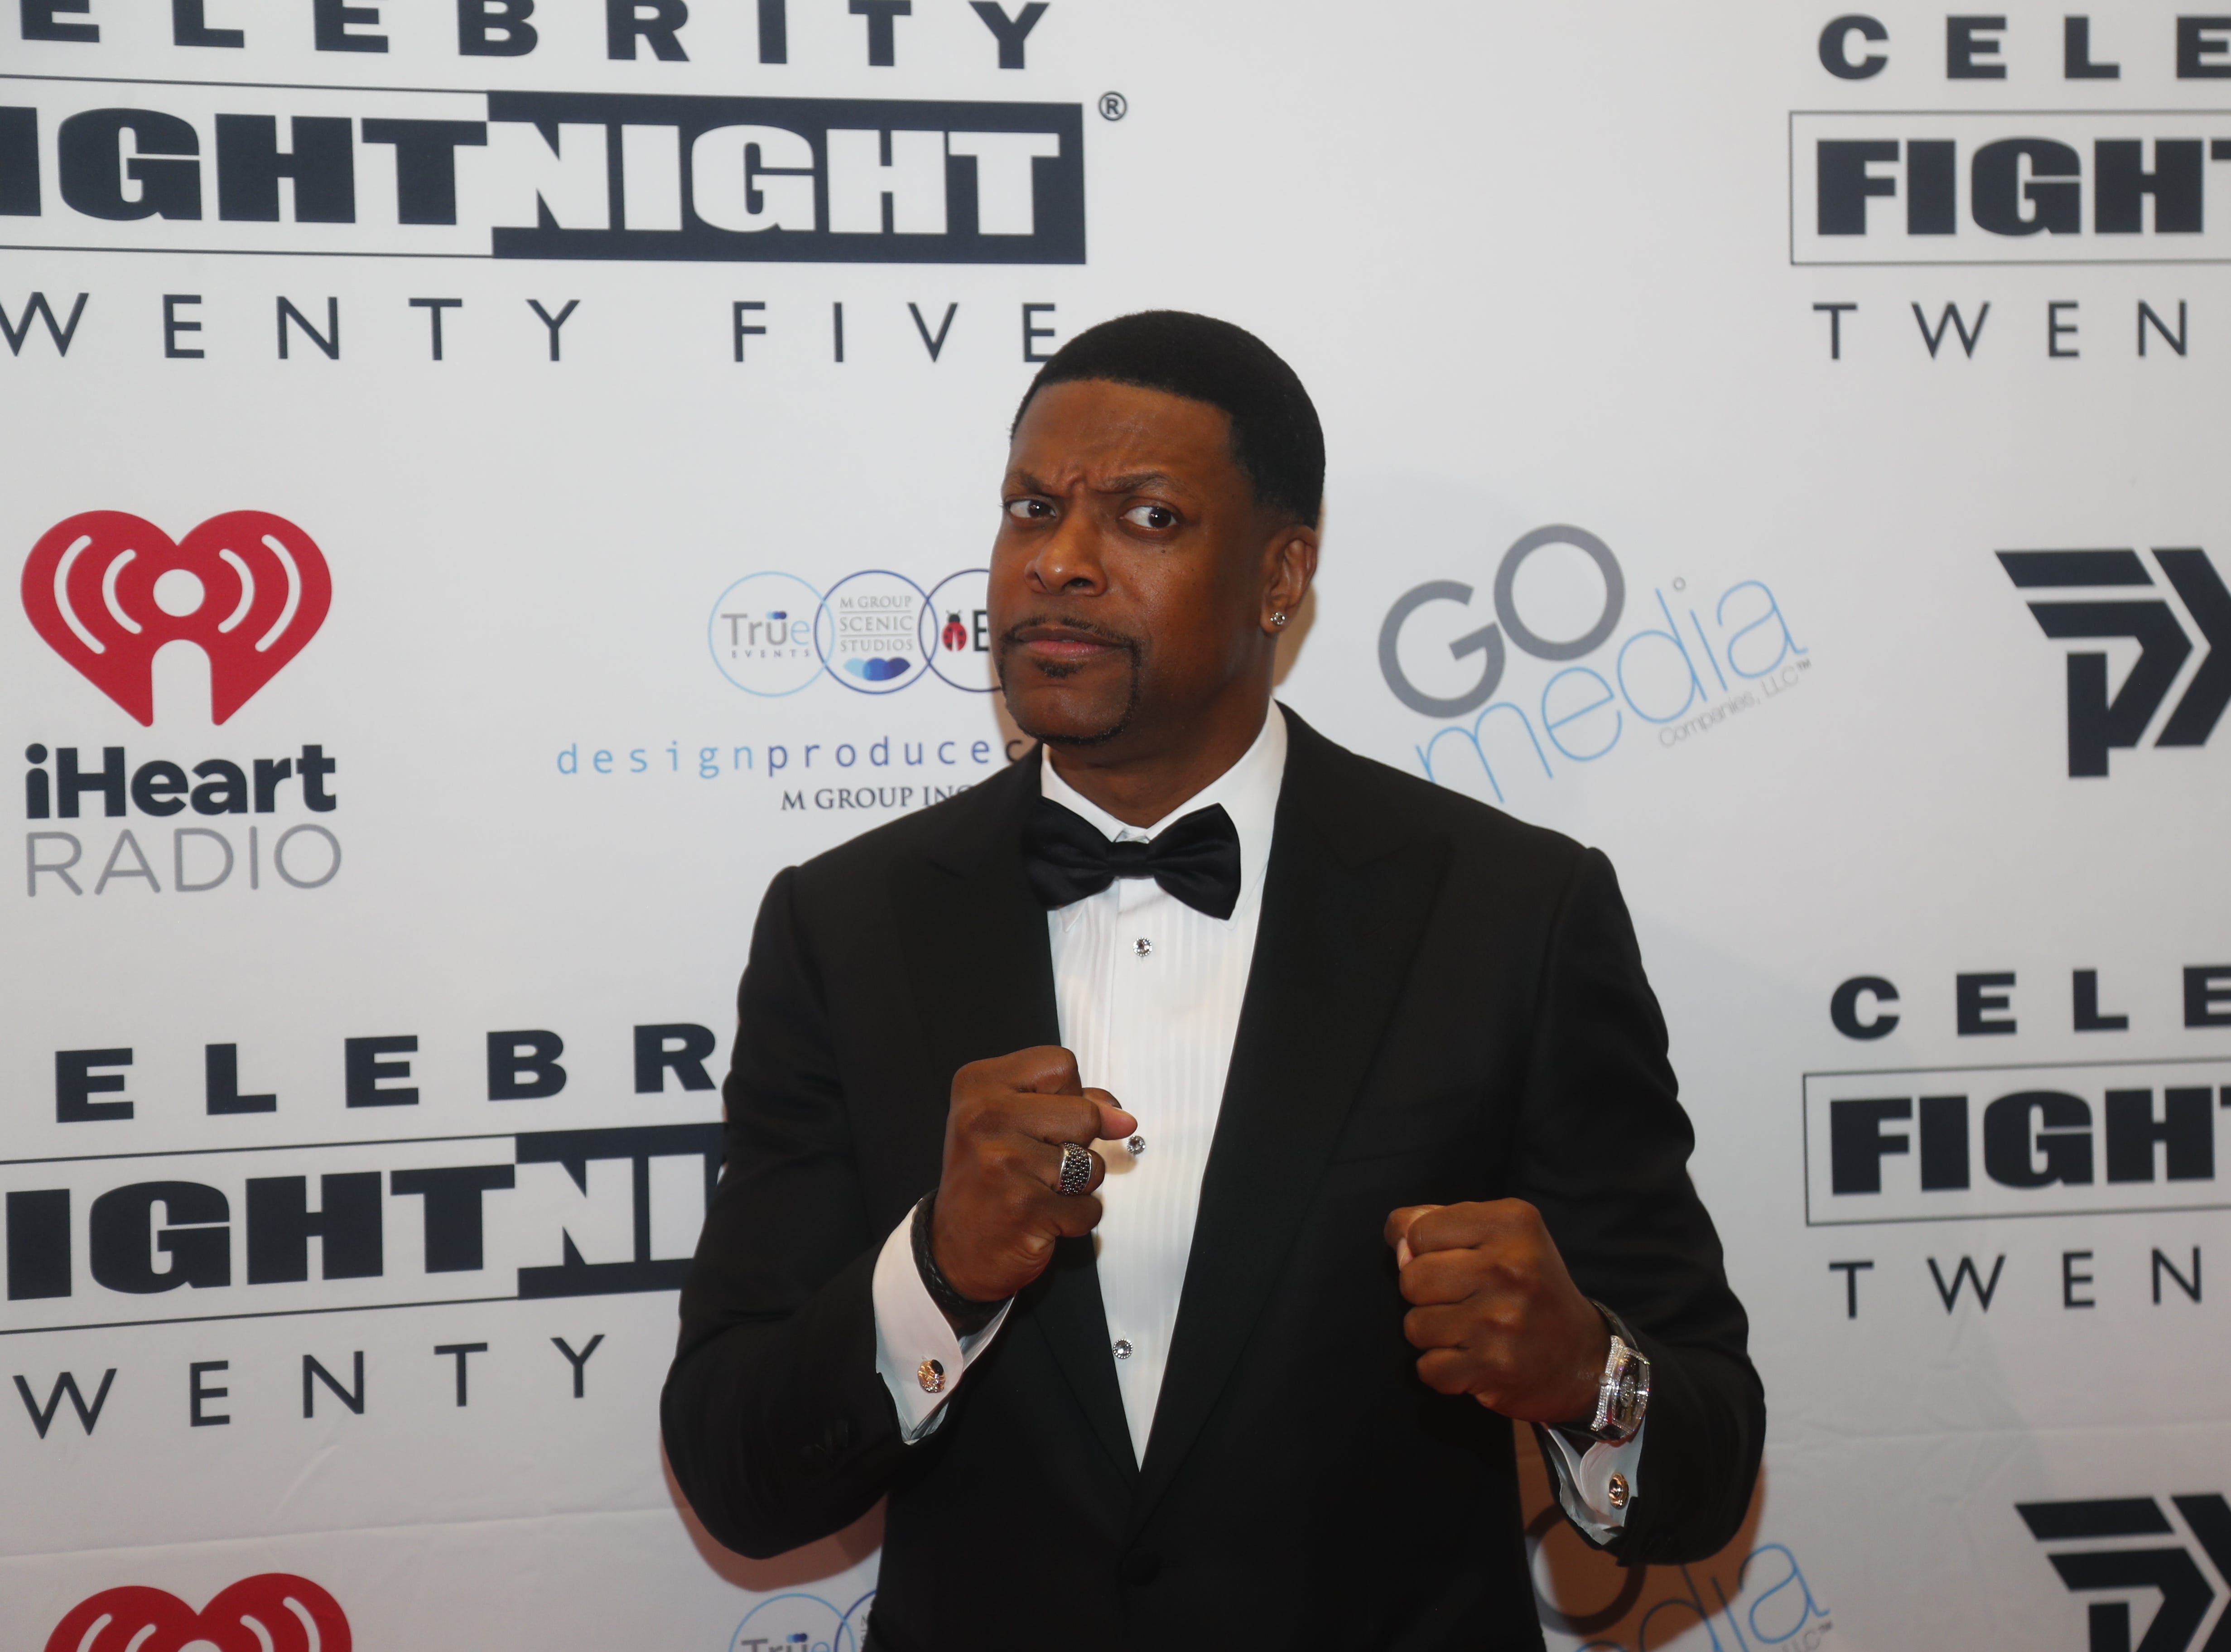 Chris Tucker poses for pictures during the Celebrity Fight Night red carpet in Scottsdale, Ariz., on March 23, 2019.